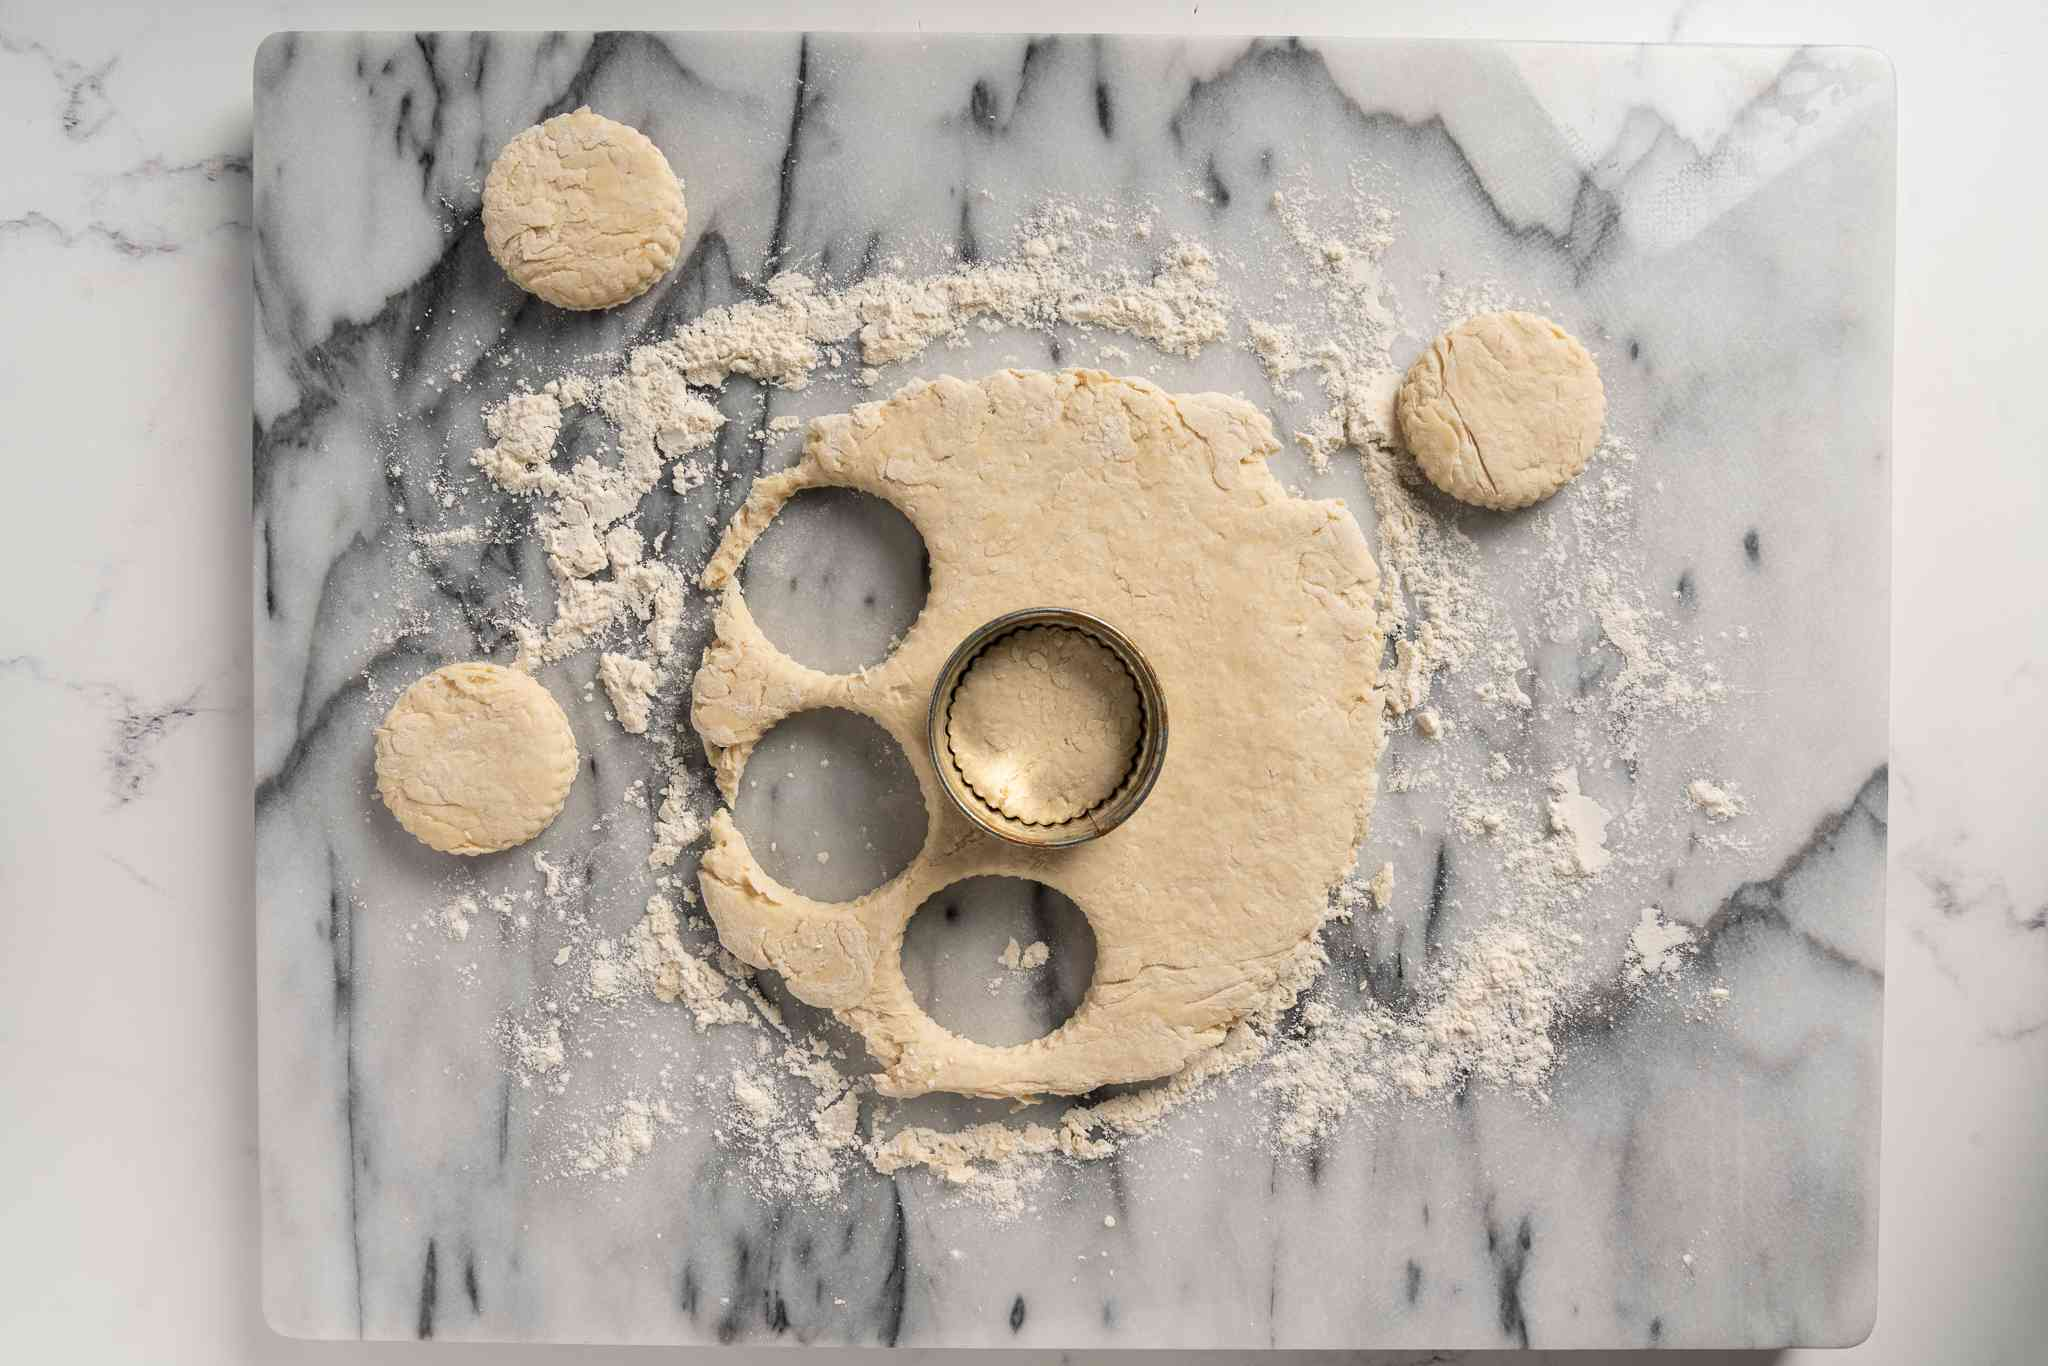 biscuits cut out of dough with a biscuit cutter